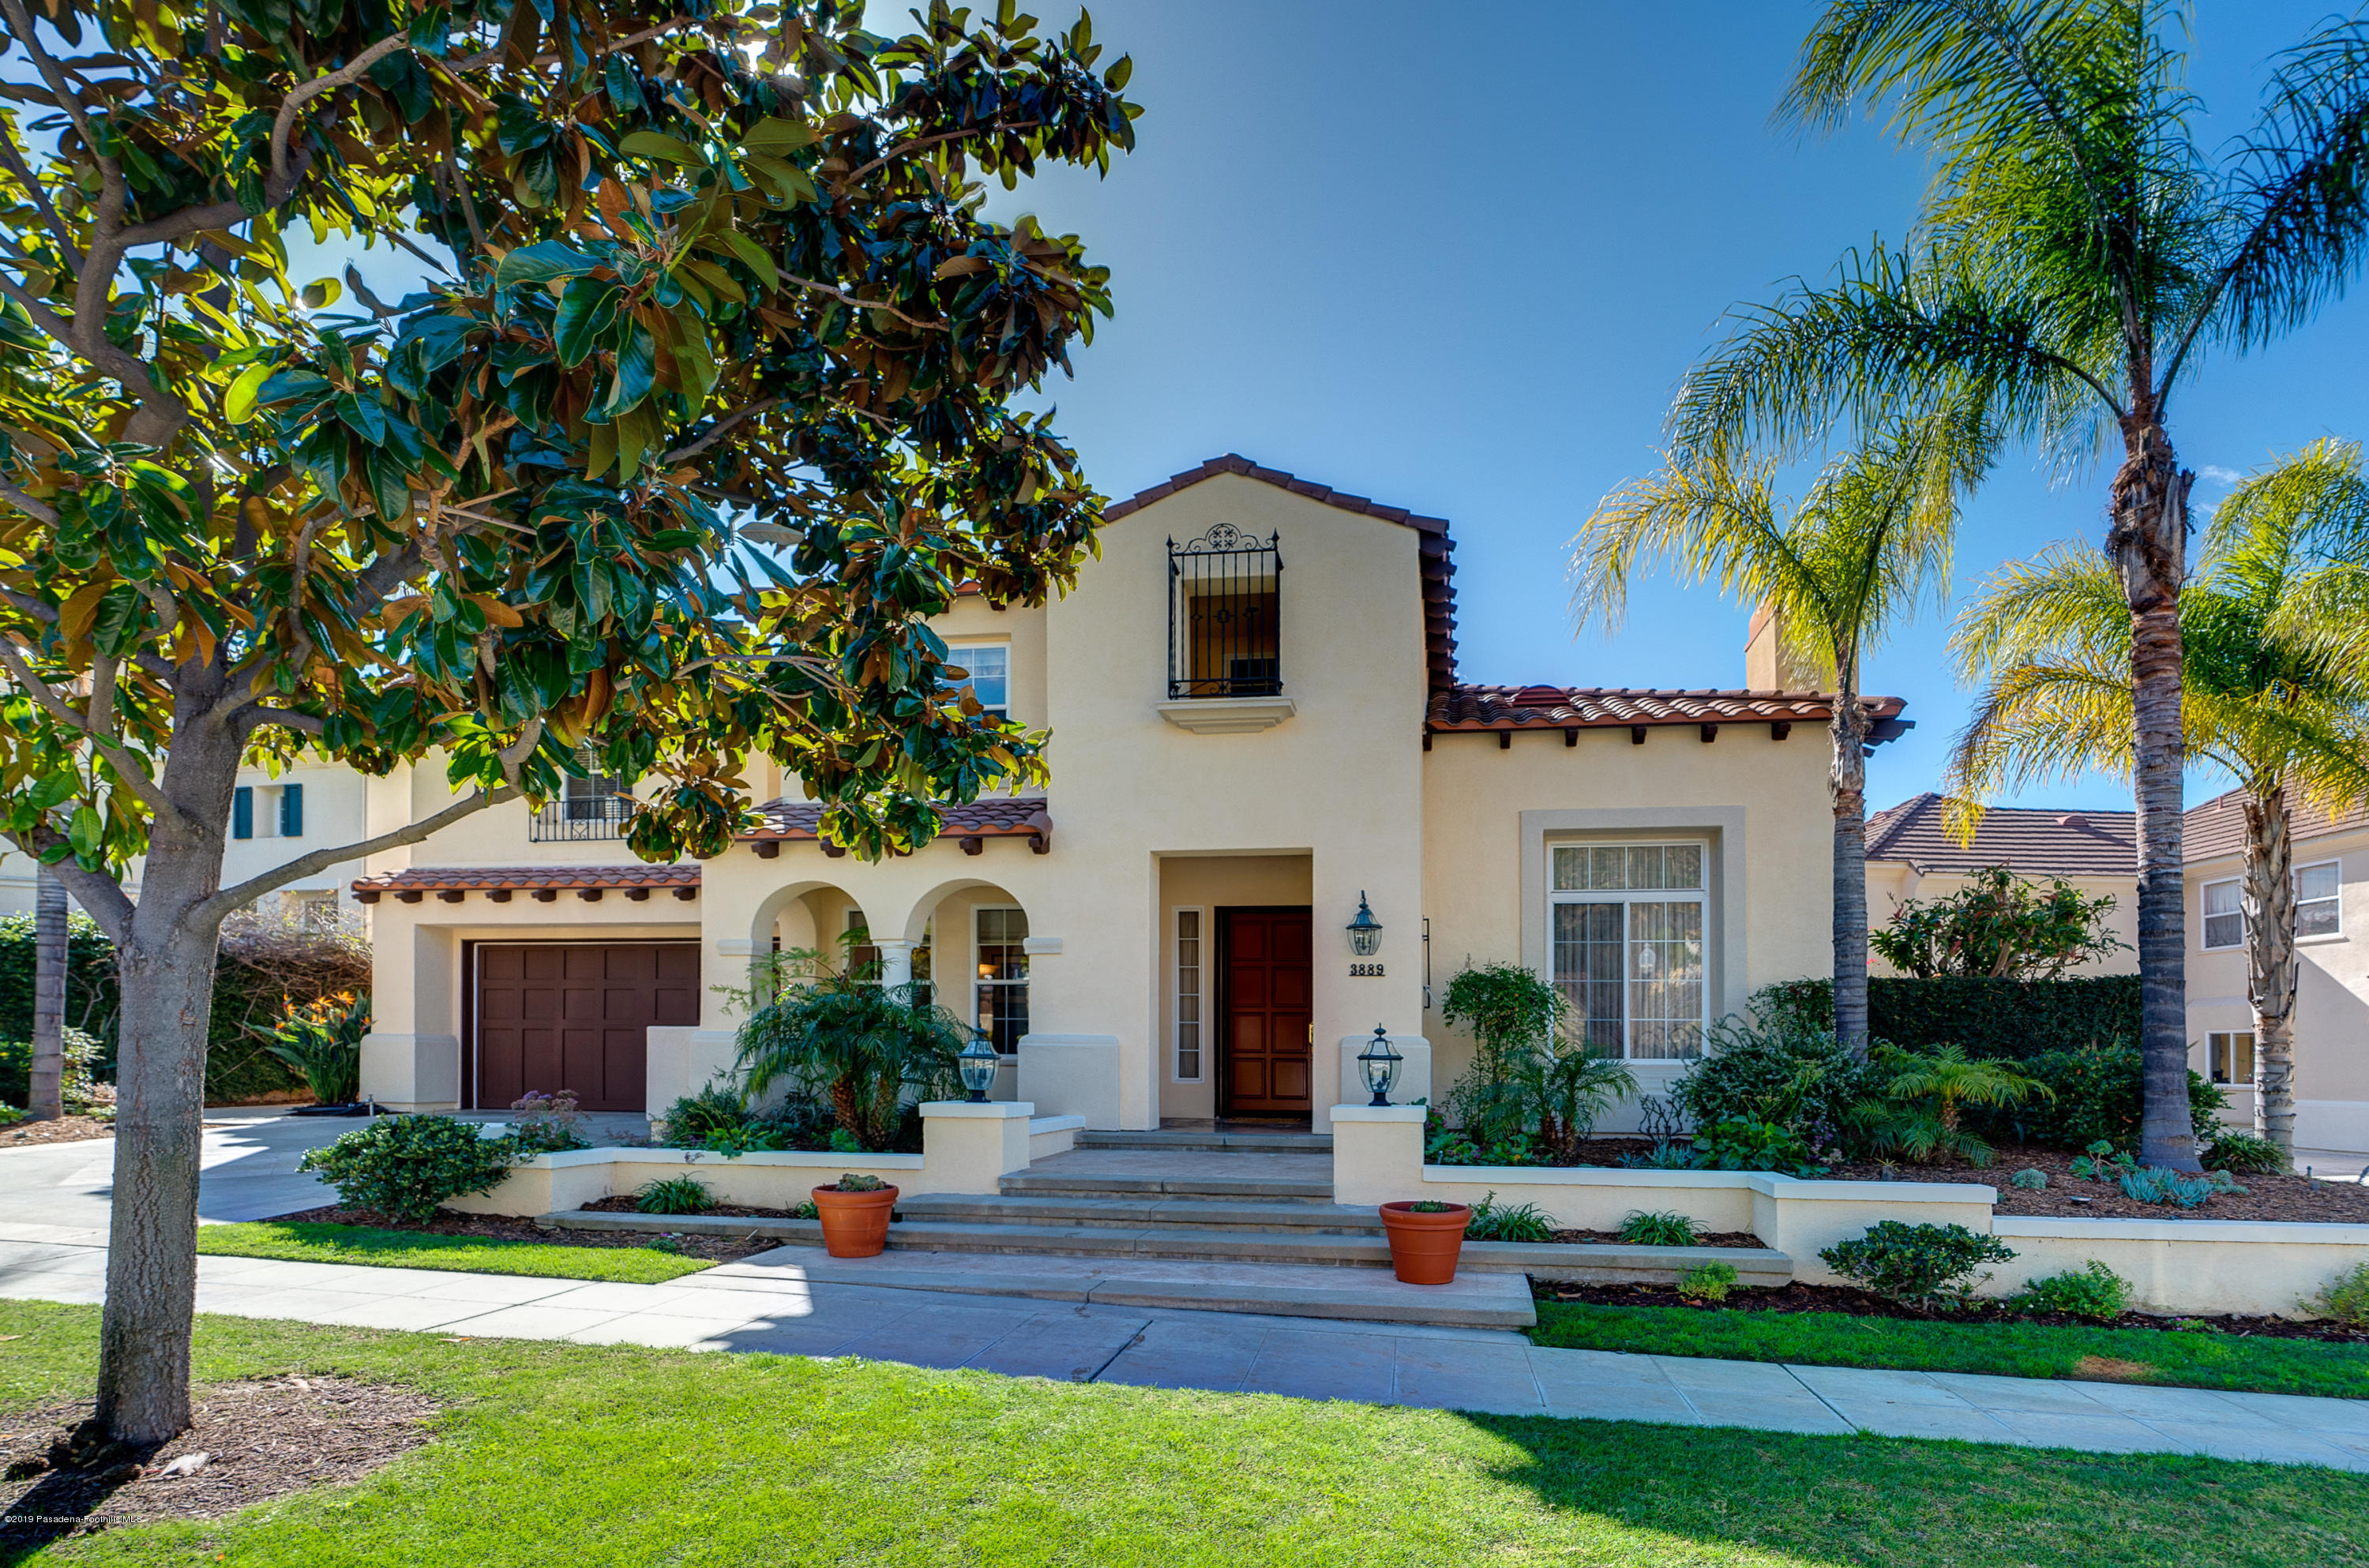 3889 Lilac Canyon Lane, one of homes for sale in Altadena